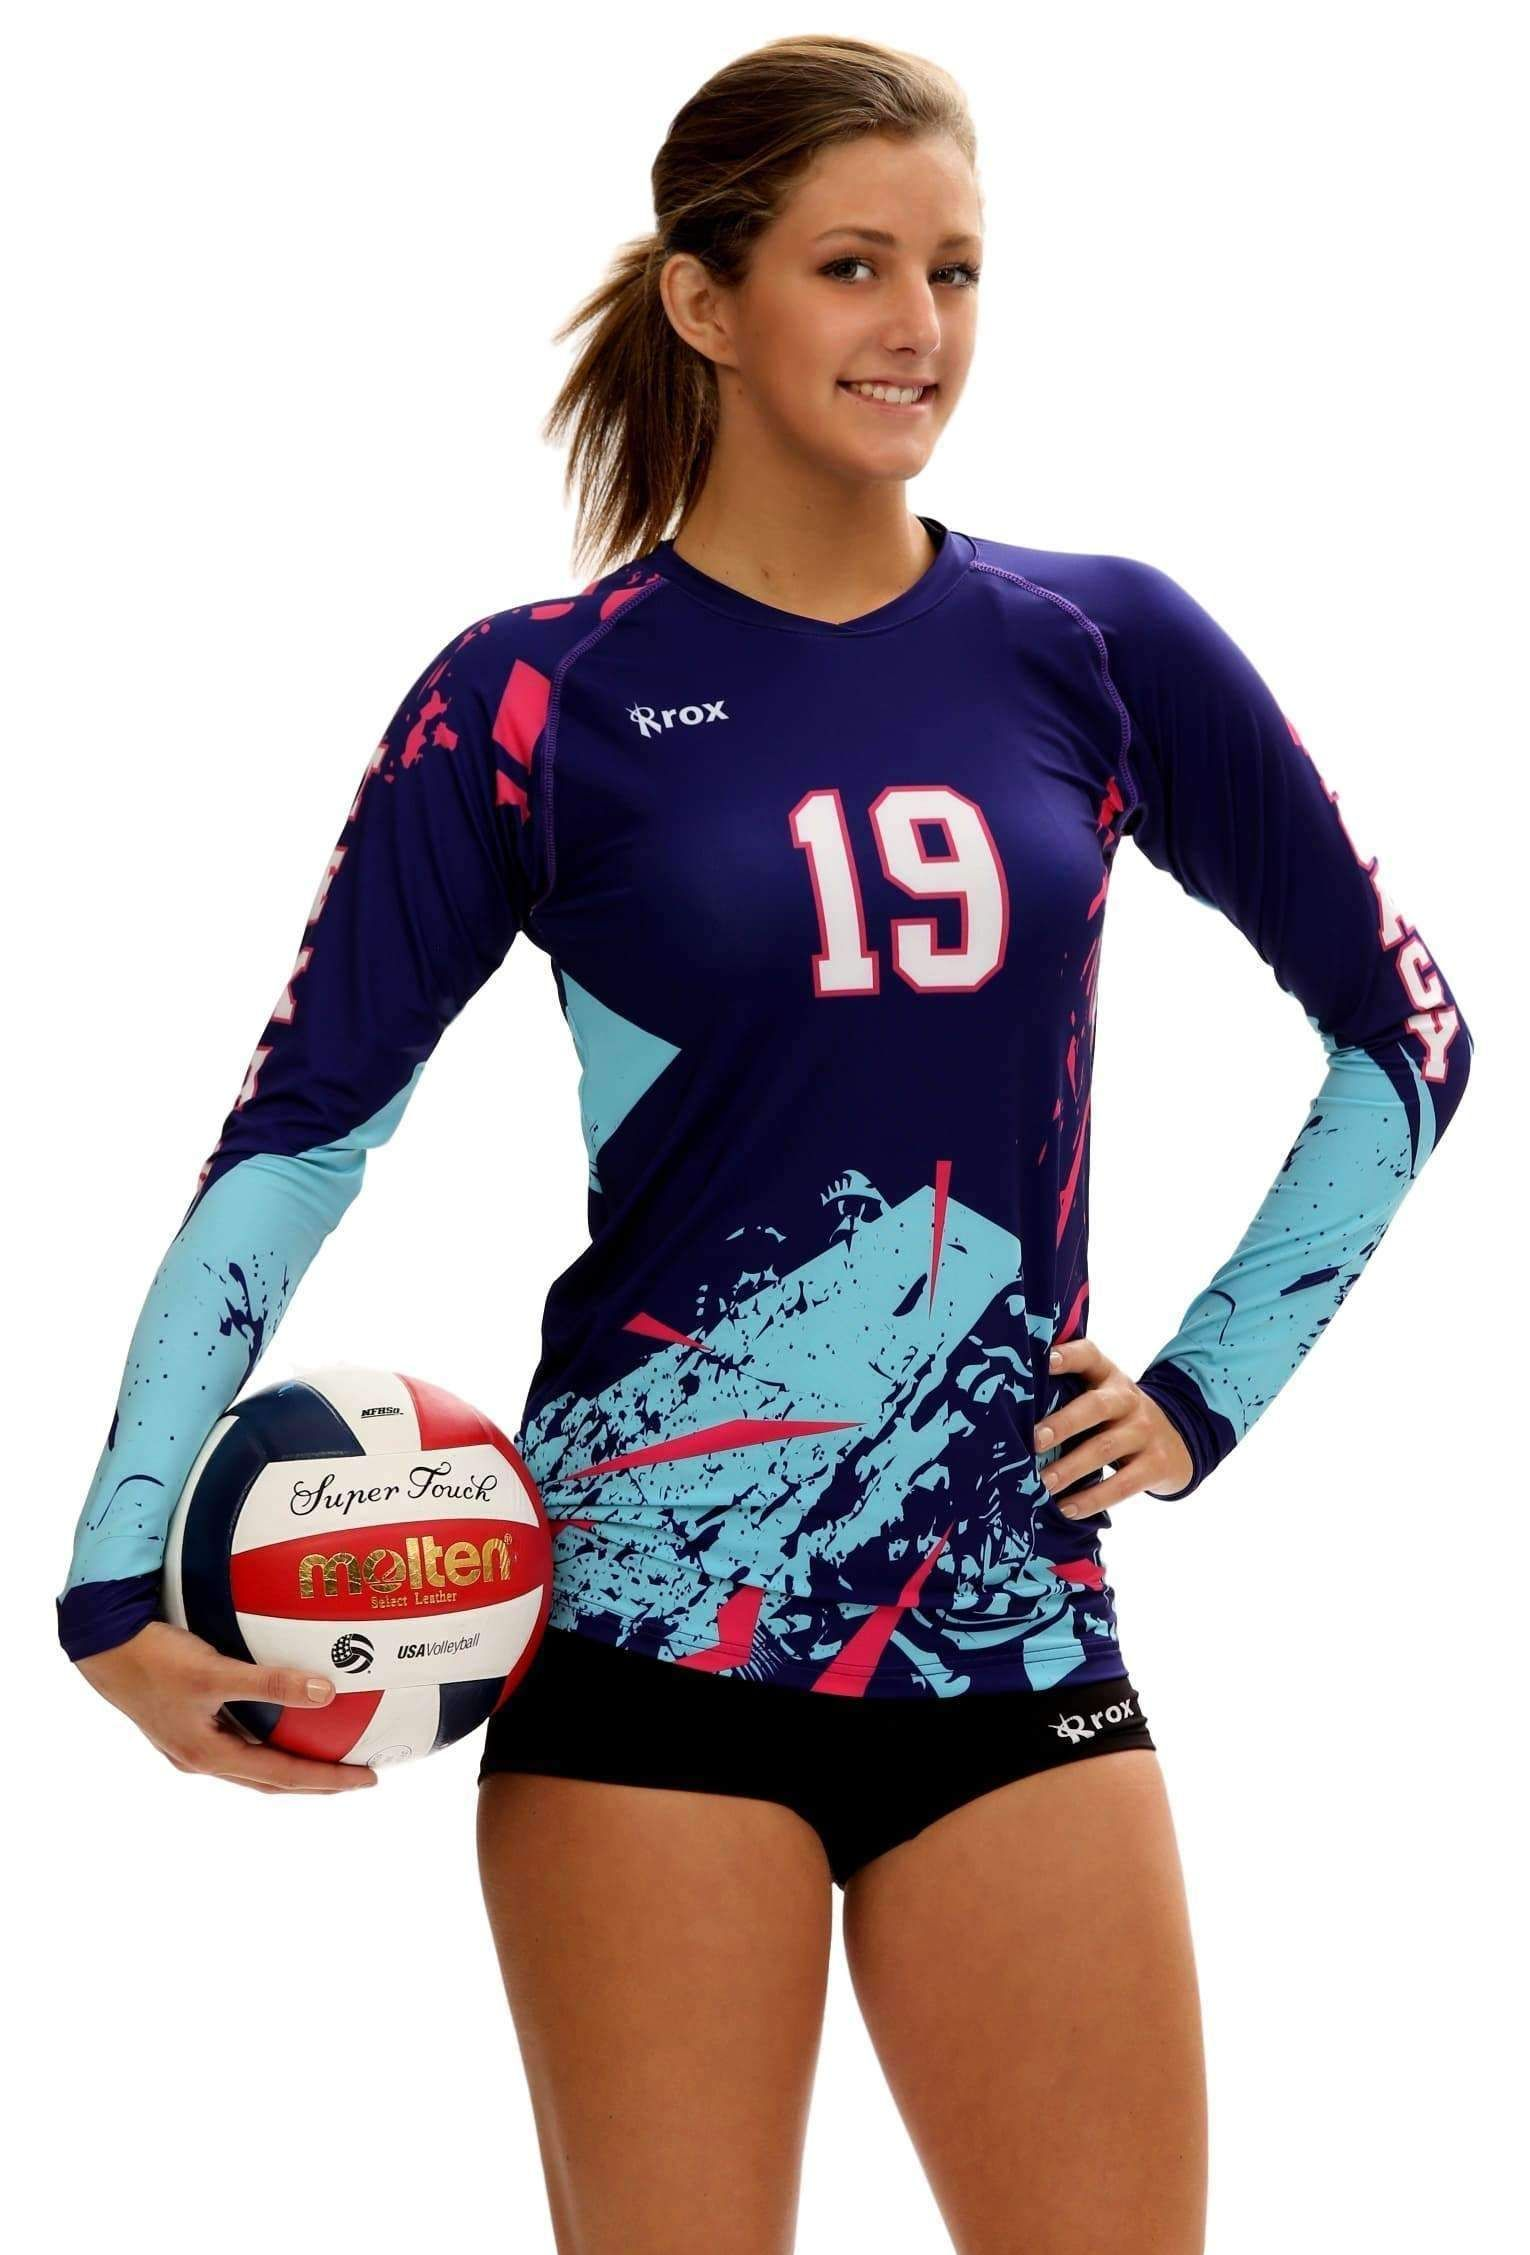 Shattered Womens Sublimated Volleyball Jersey Volleyball Jerseys Volleyball Uniforms Design Volleyball Uniforms